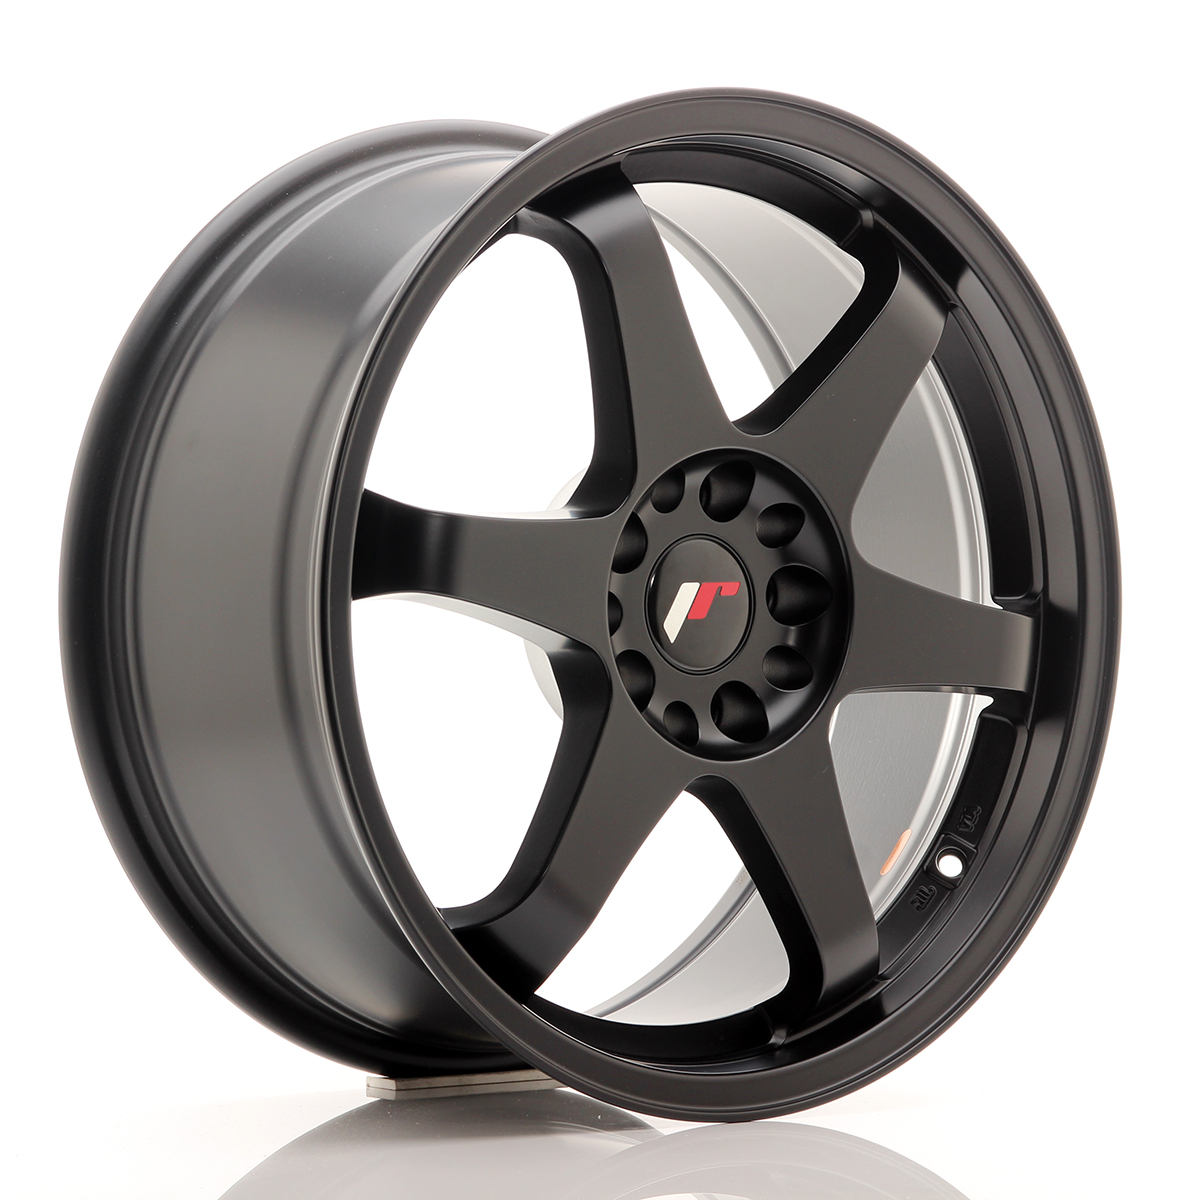 Japan Racing JR Wheels JR3 18x8' ET35 5x120 5x100 Black